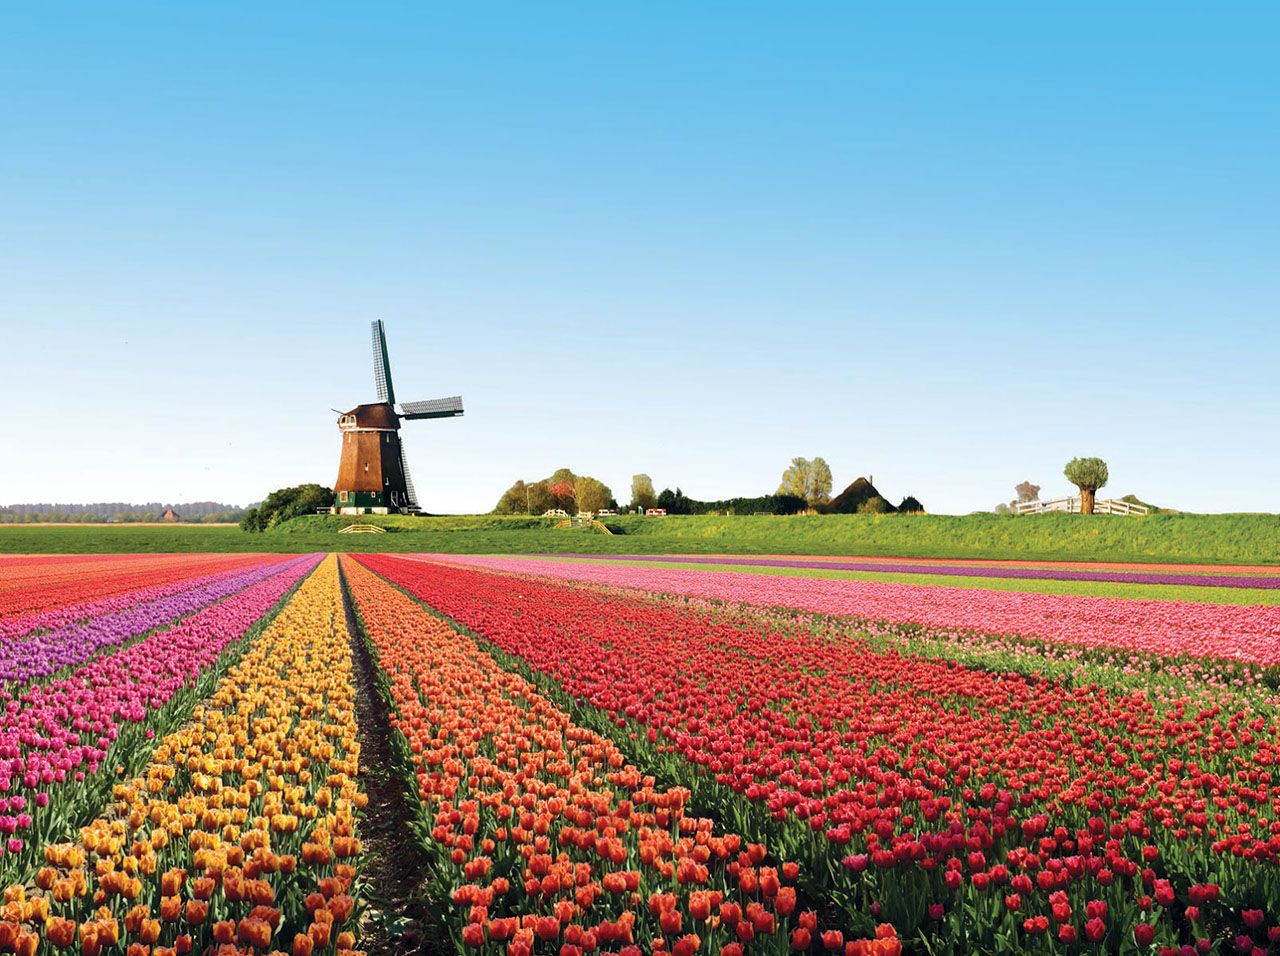 Champs-de-tulipes-Alkmaar-Pays-Bas-photo-01